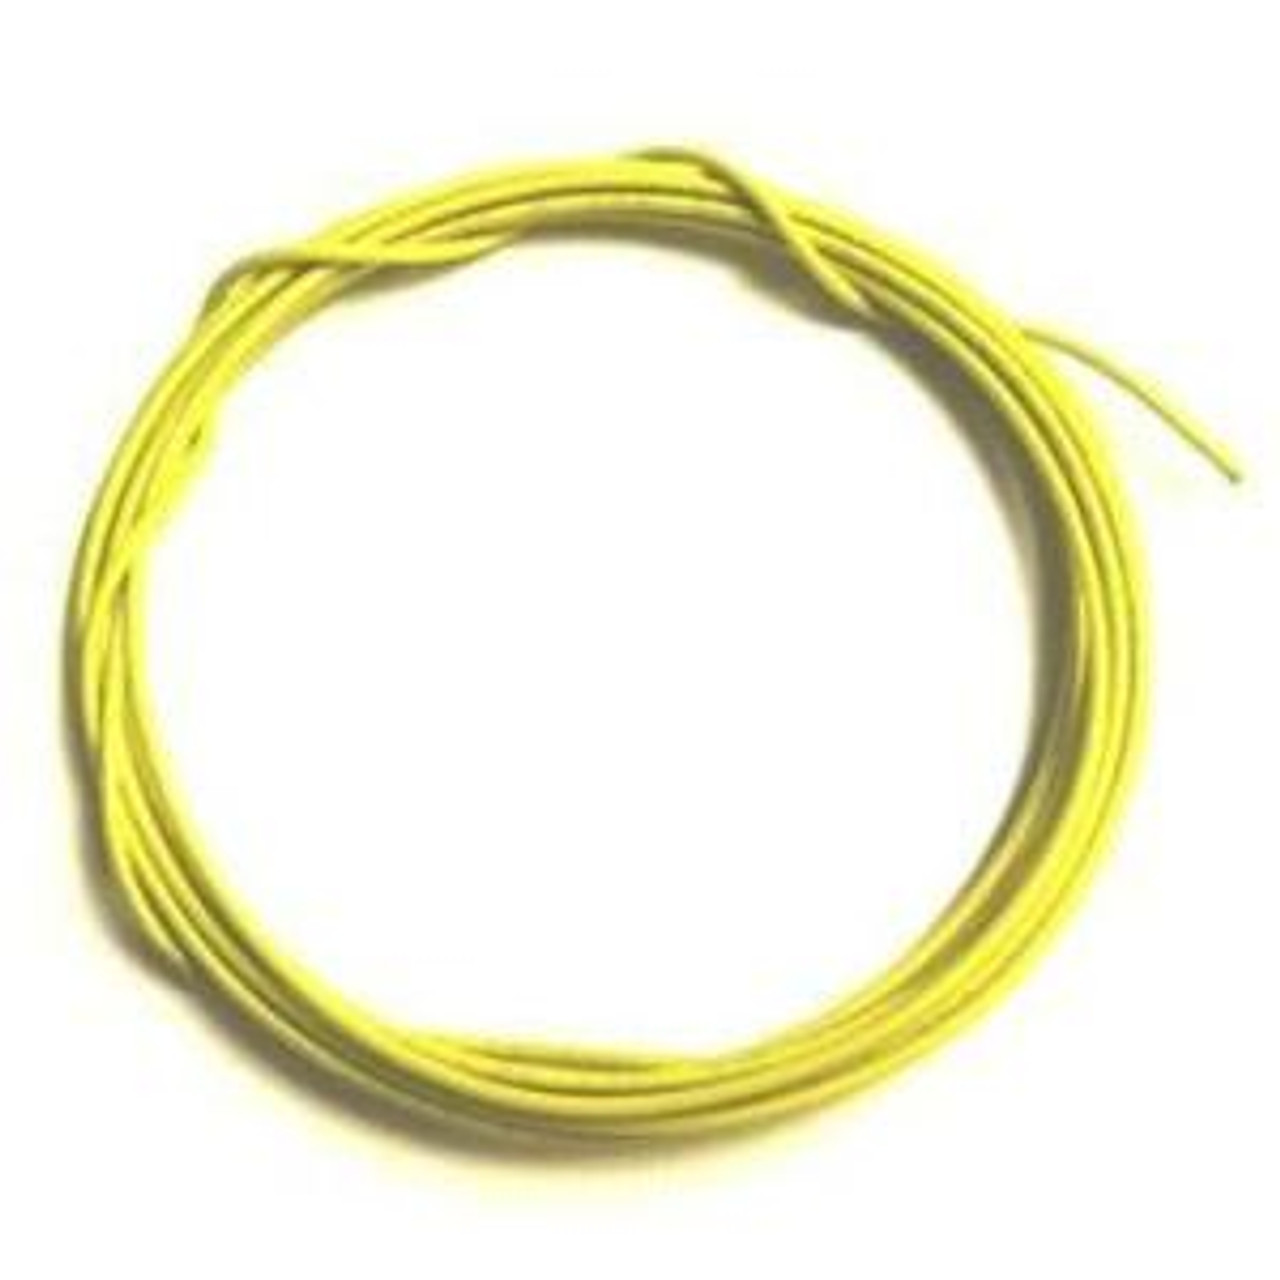 Solid Core 22 Gauge Guitar Circuit Wire-Yellow